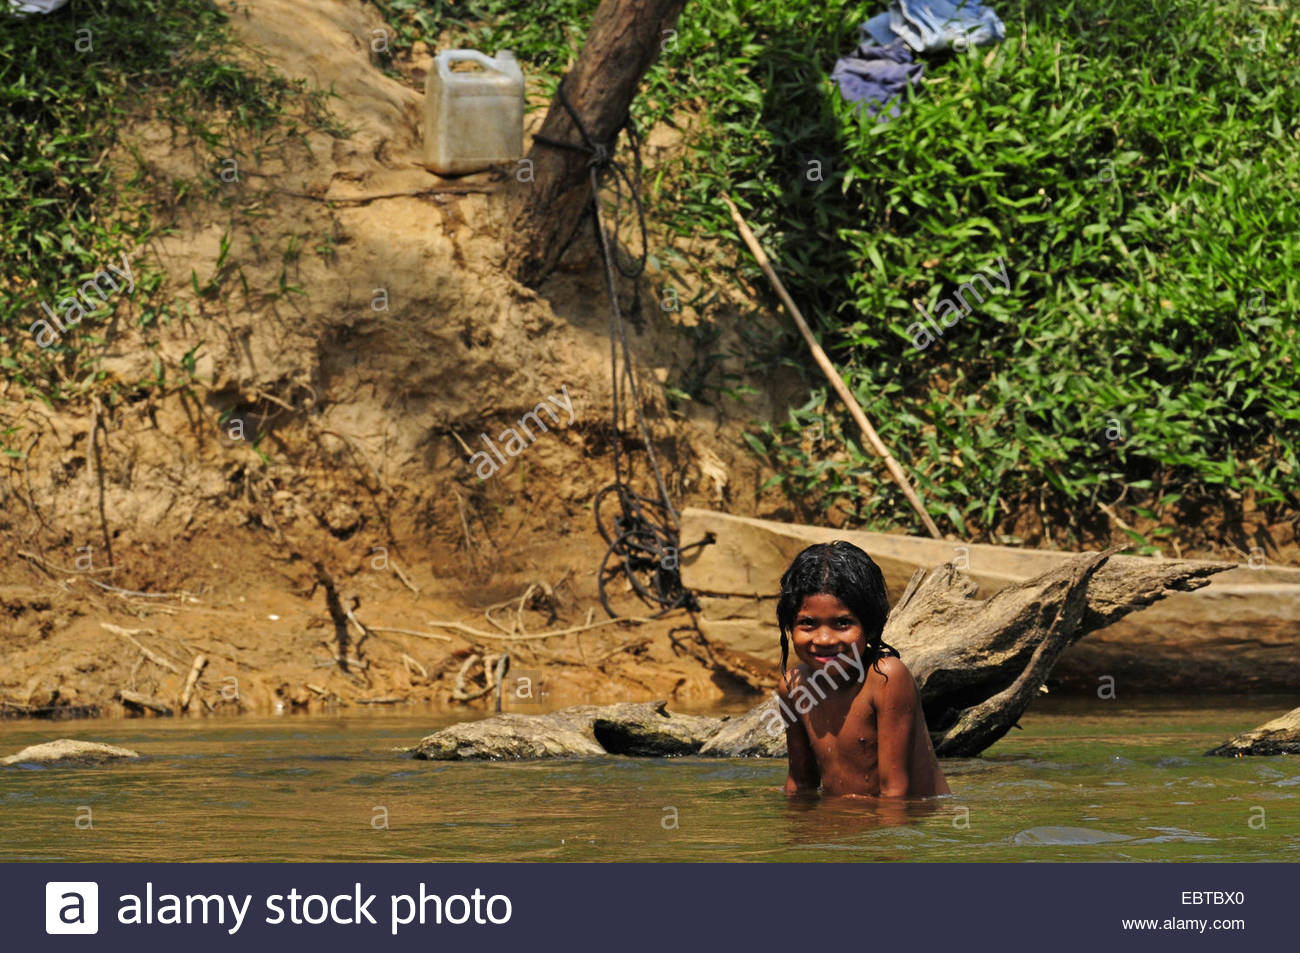 Mistruk La Mosquitia, Honduras Girl Stock Photos & Honduras Girl Stock Images - Alamy